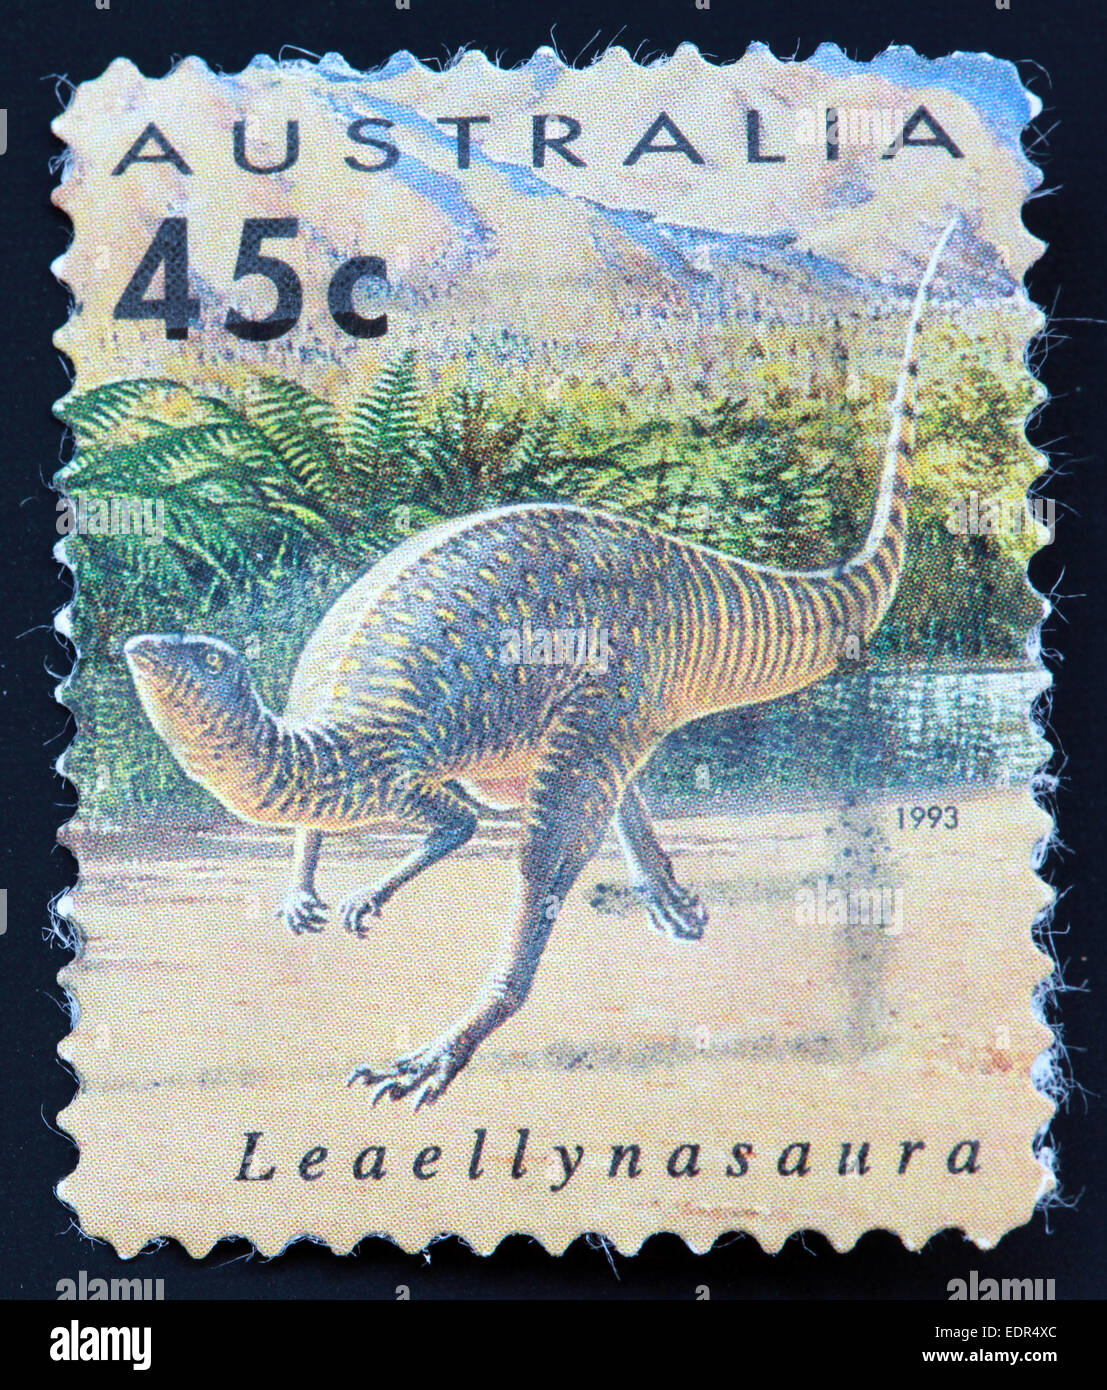 Used and postmarked Australia / Austrailian Stamp 45c Leaellynasaura 1993 - Stock Image